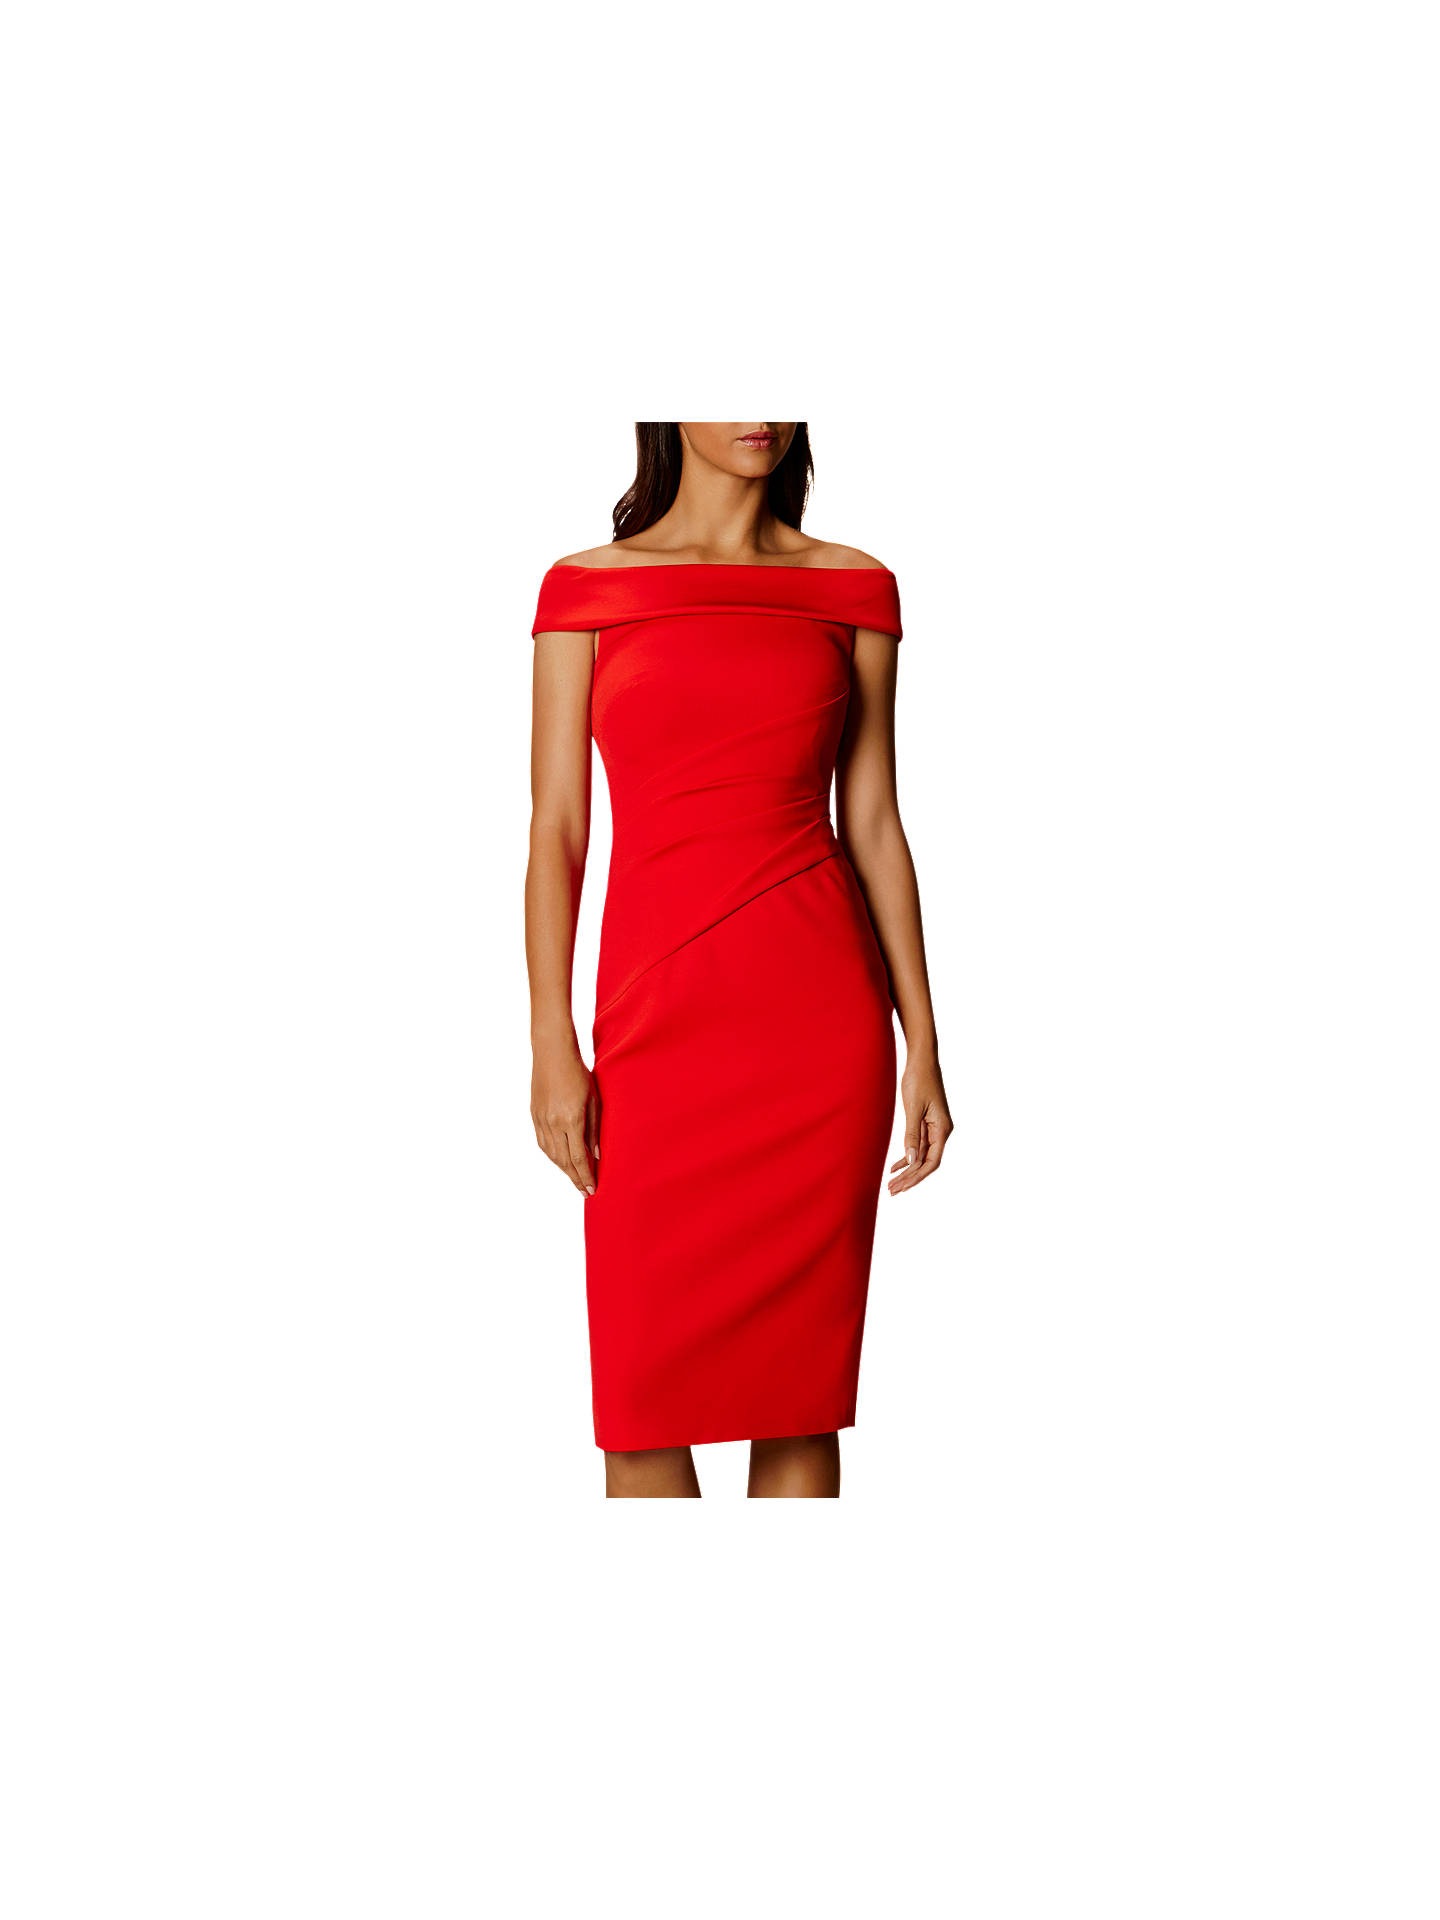 d8342a75affd Buy Karen Millen Bardot Shoulder Pencil Dress, Red, 6 Online at  johnlewis.com ...